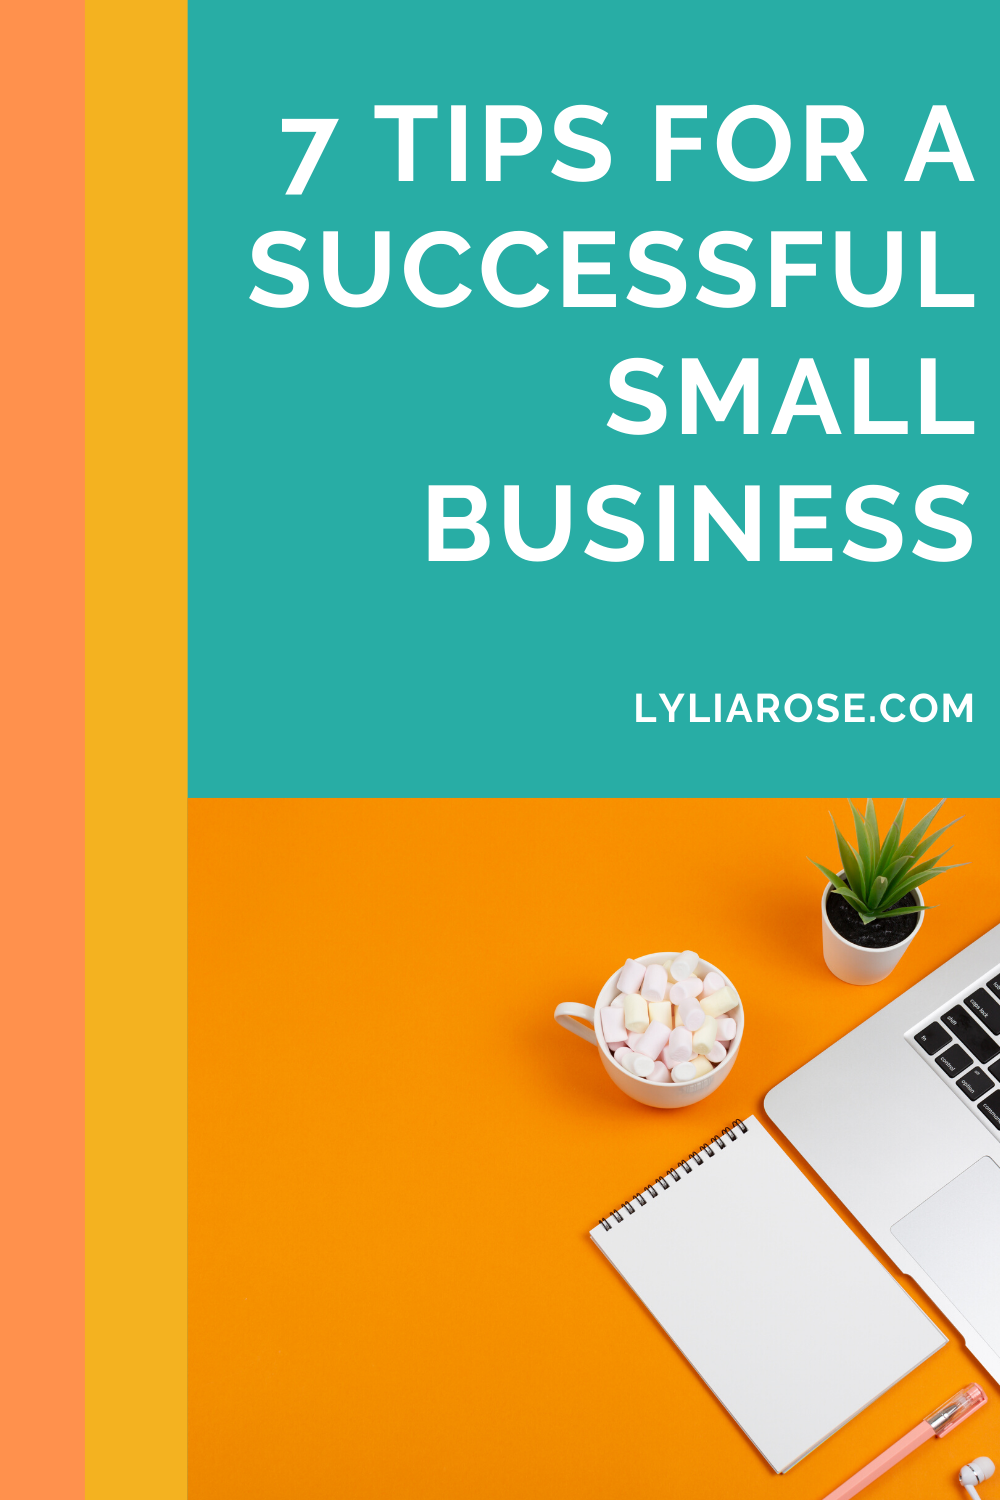 7 tips for a successful small business (5)